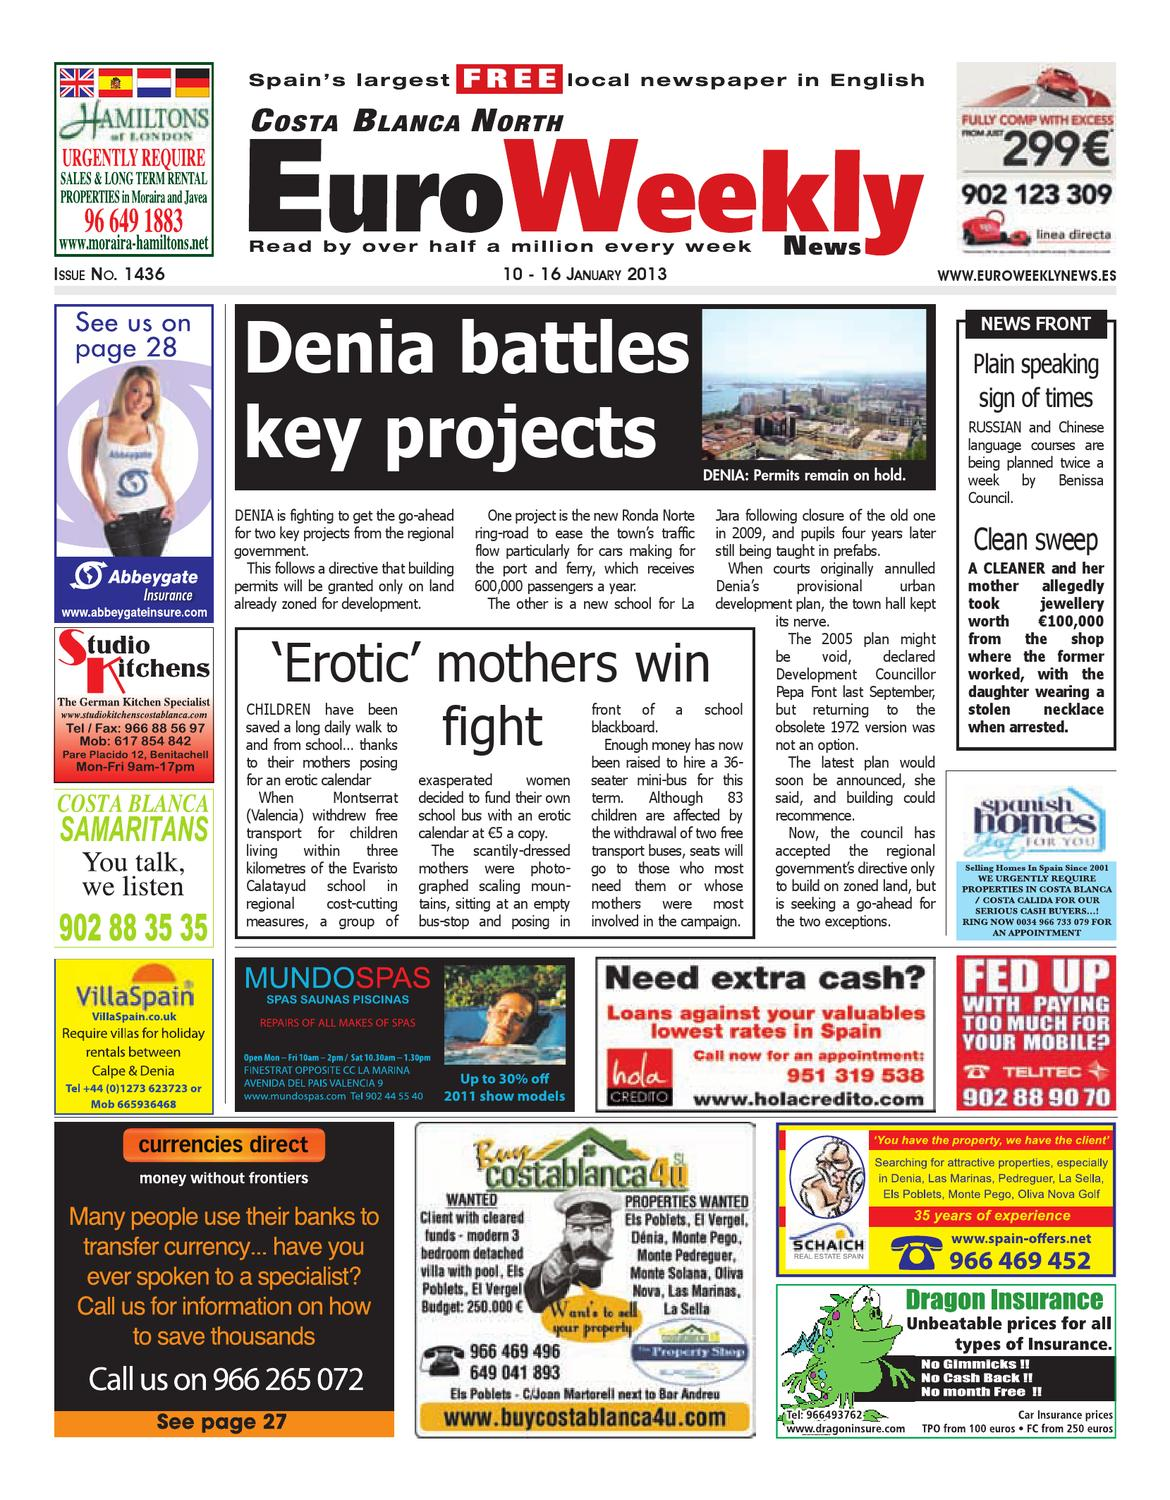 Costa Blanca North 10 - 16 January 2013 Issue 1436 by Euro Weekly News  Media S.A. - issuu